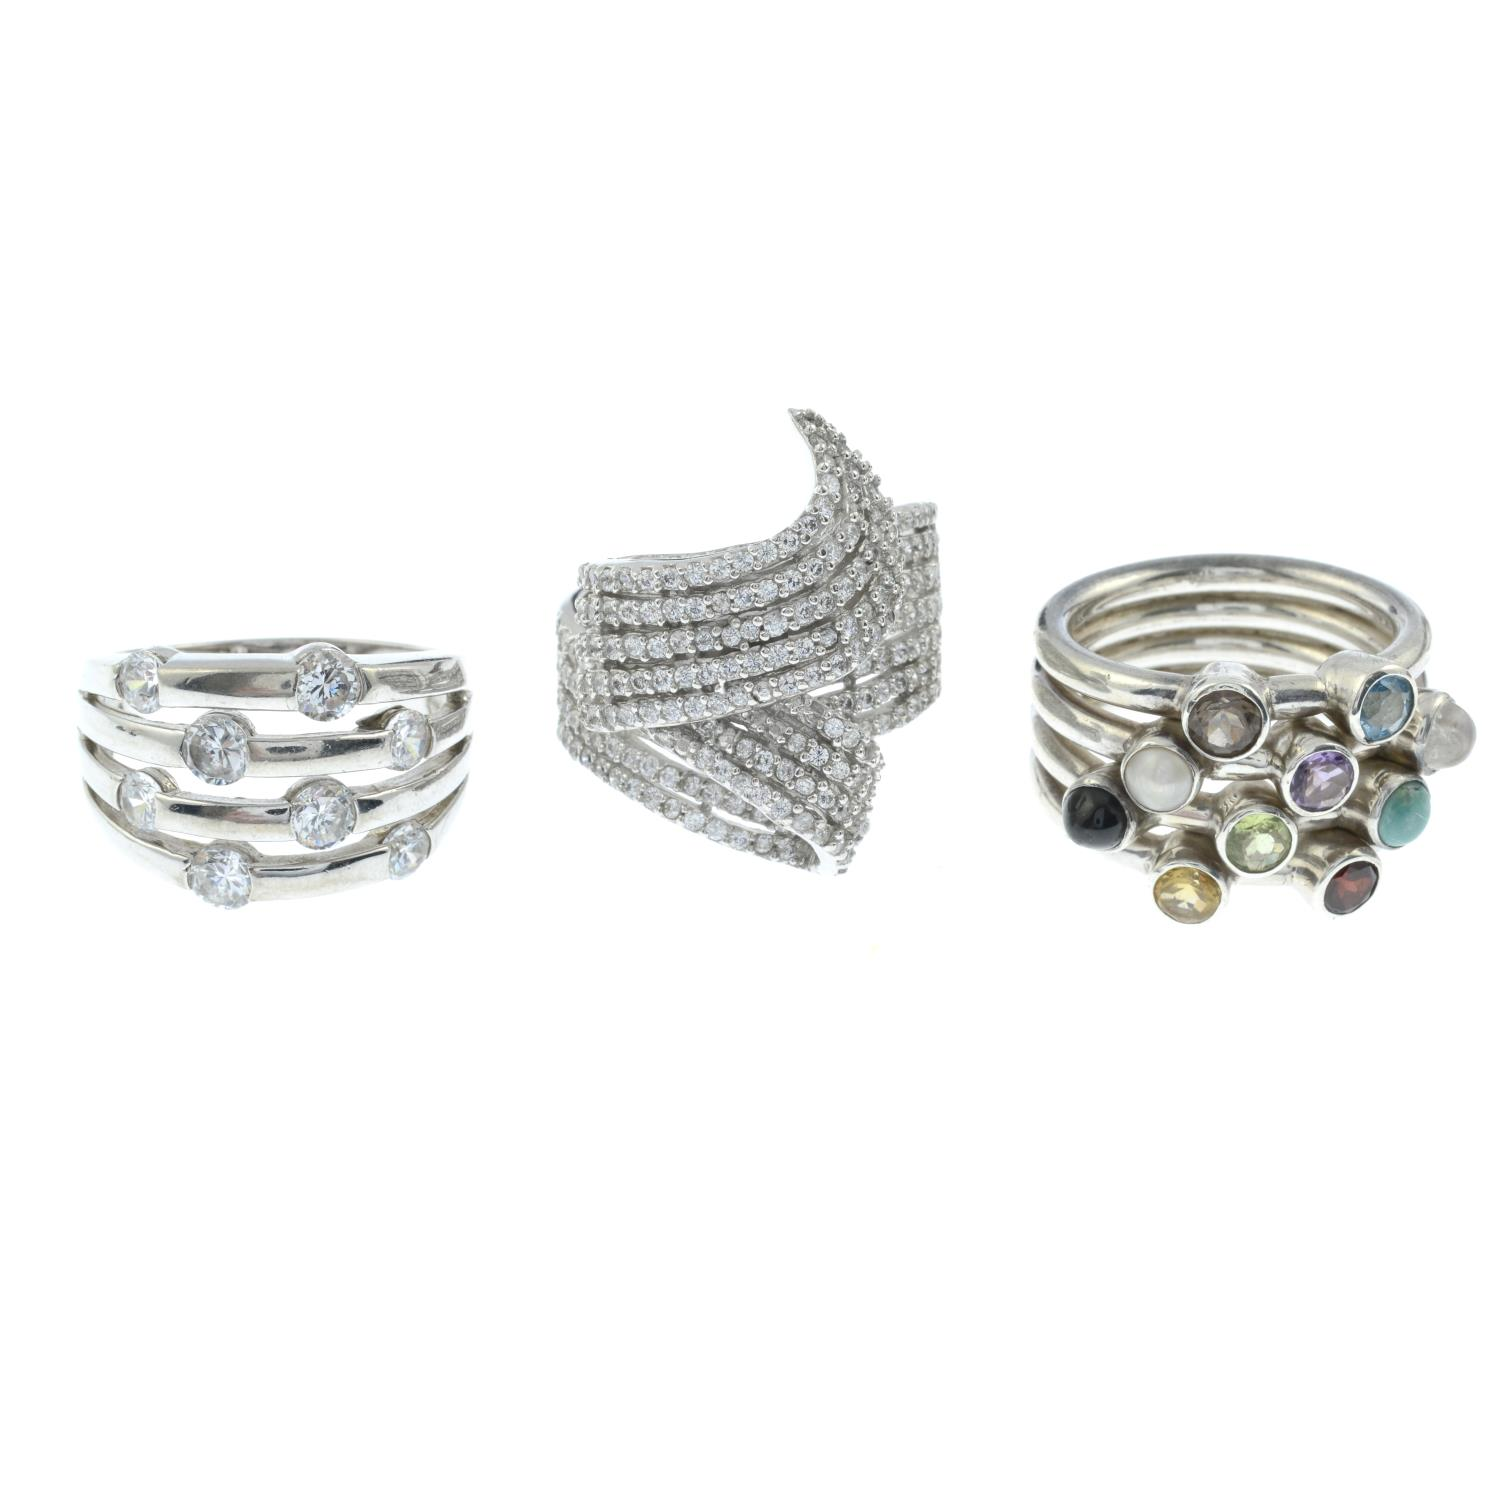 A selection of ten gem-set rings, to include a cubic zirconia eternity ring.